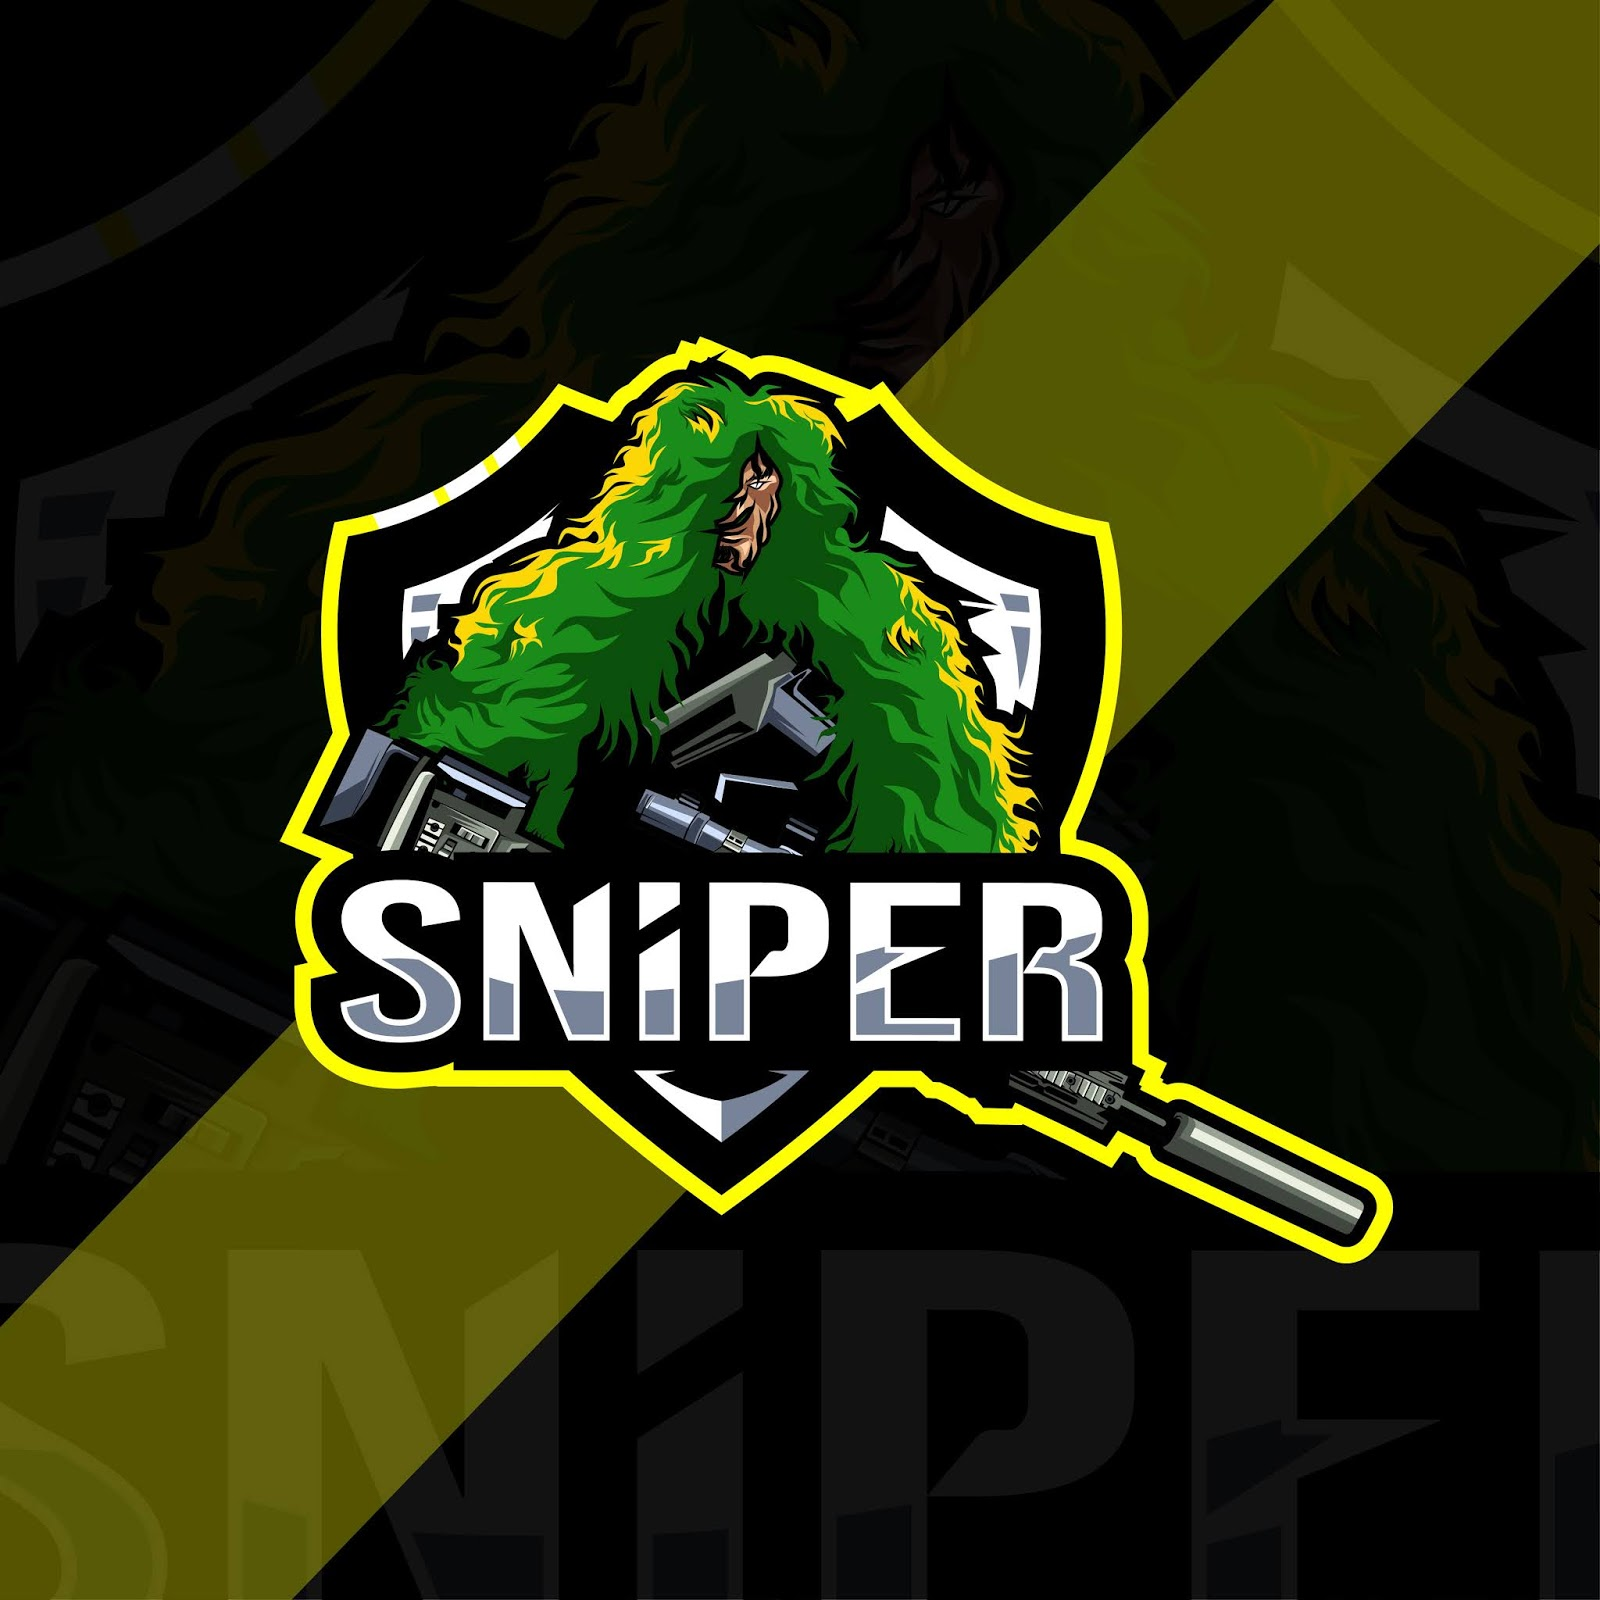 Sniper Mascot Logo Esport Template Free Download Vector CDR, AI, EPS and PNG Formats